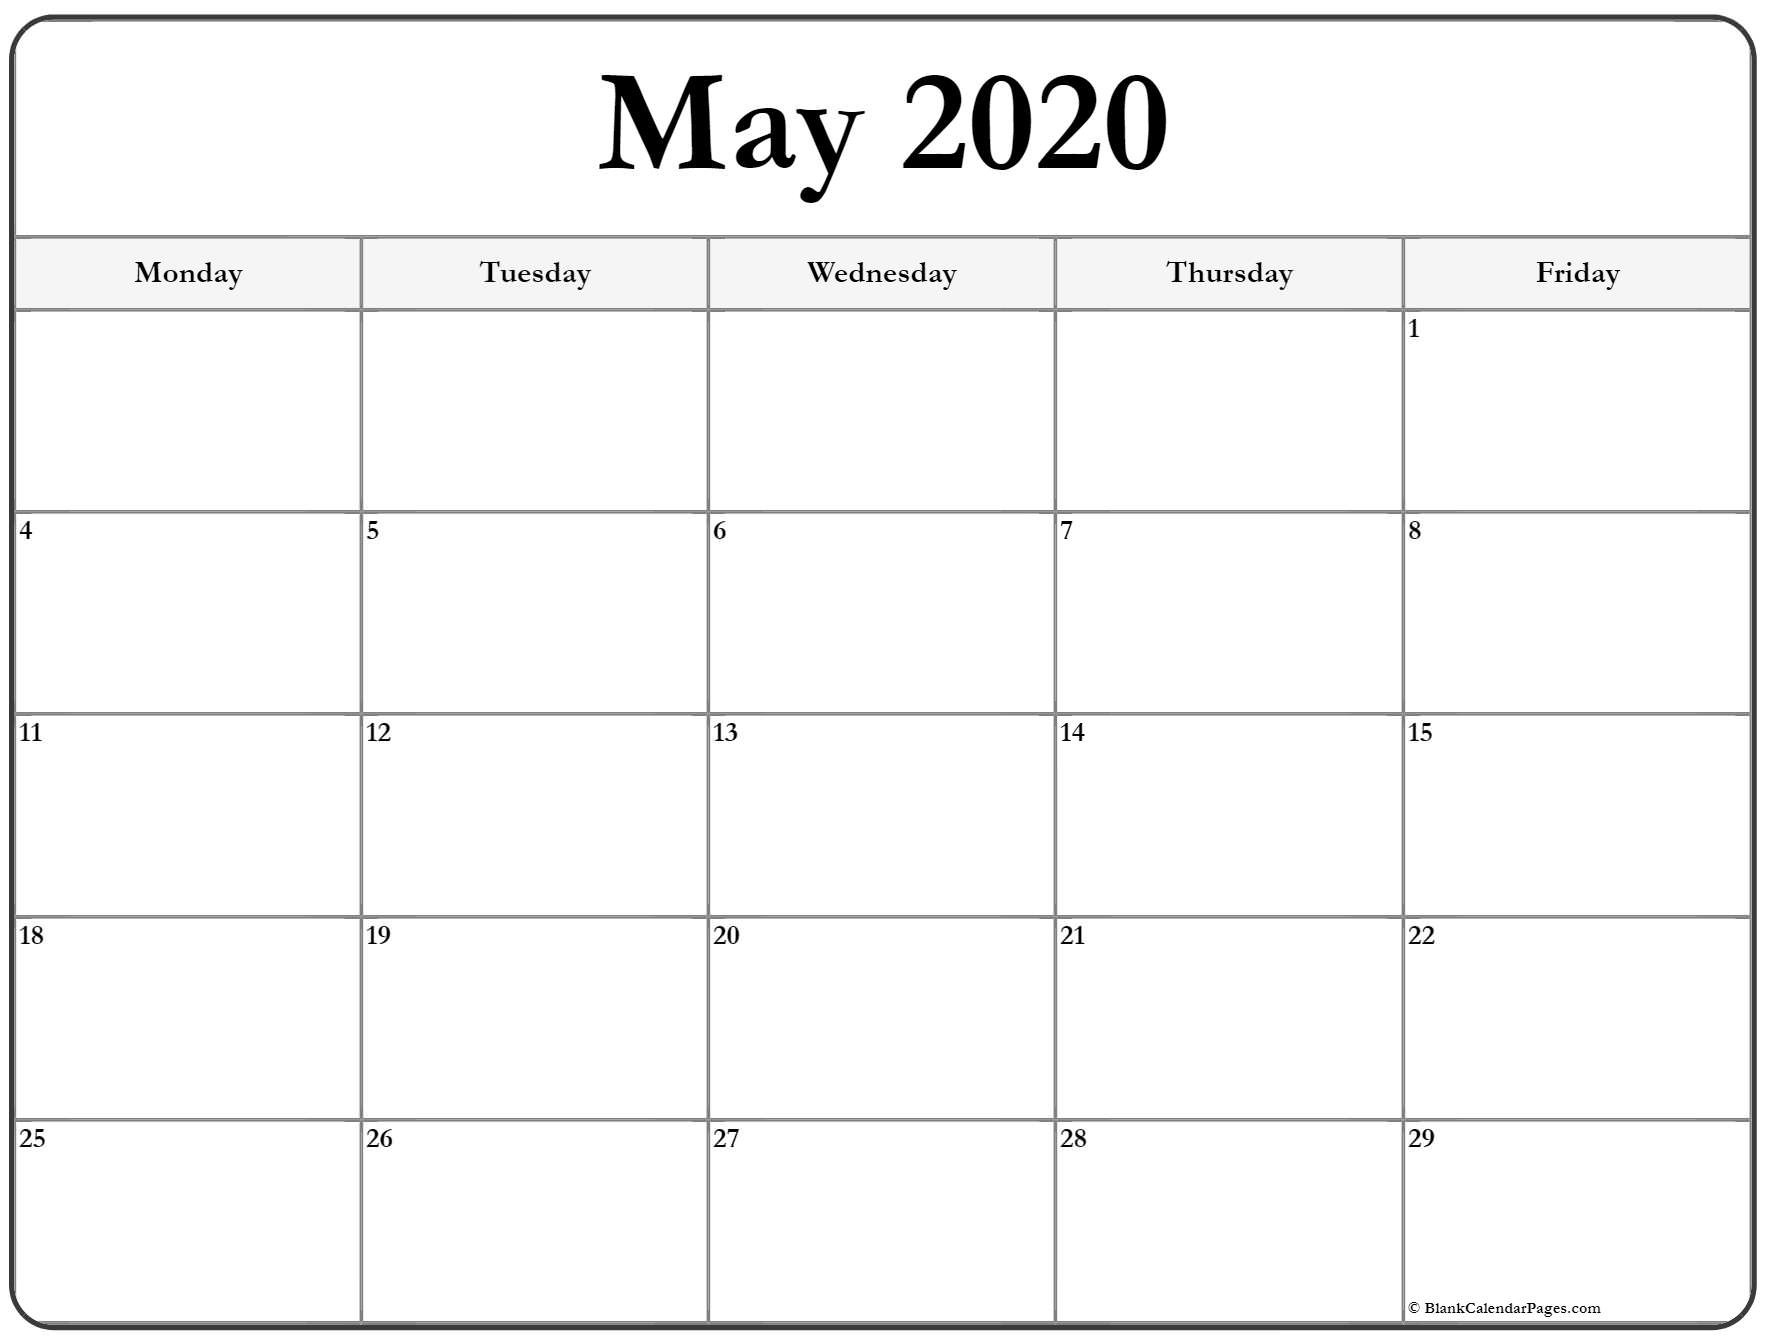 May 2020 Monday Calendar   Monday To Sunday Monday To Friday Planner